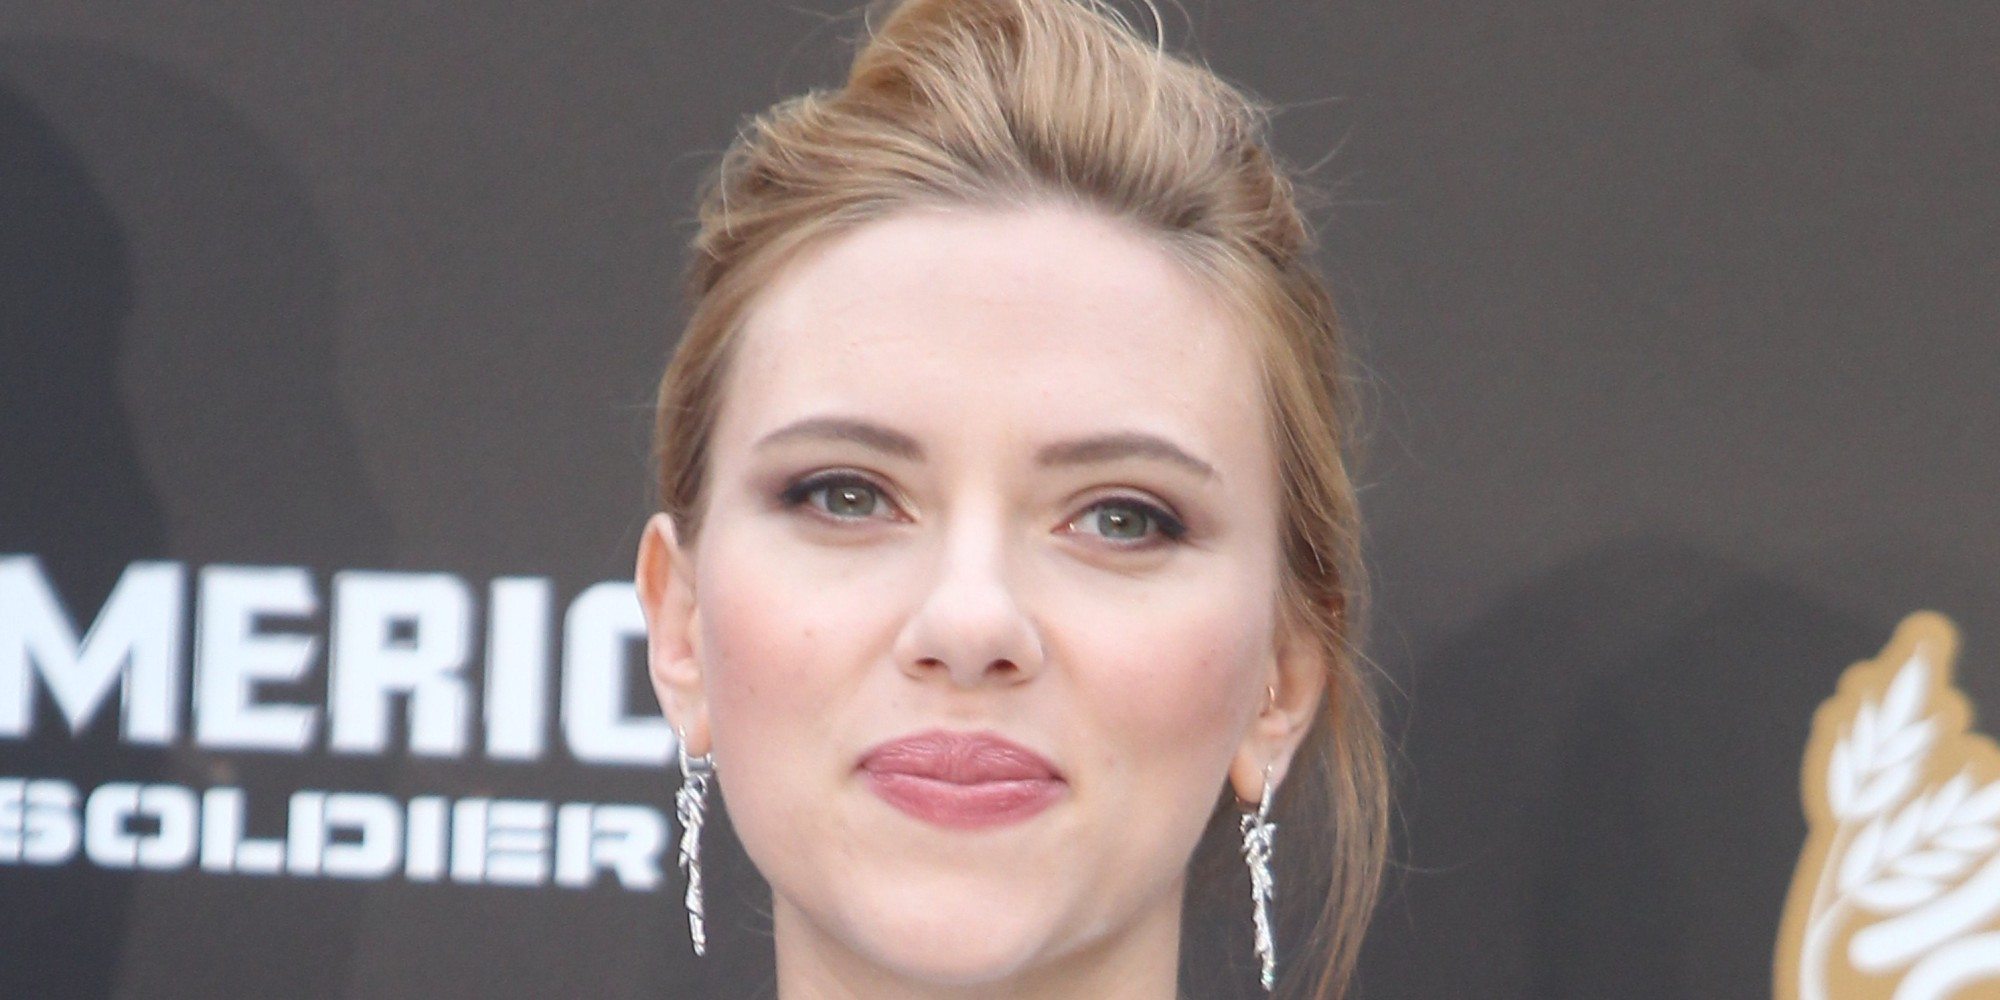 jailbait nude Scarlett Johansson Opens Up About Her First Fully Nude Role In 'Under The  Skin' | HuffPost